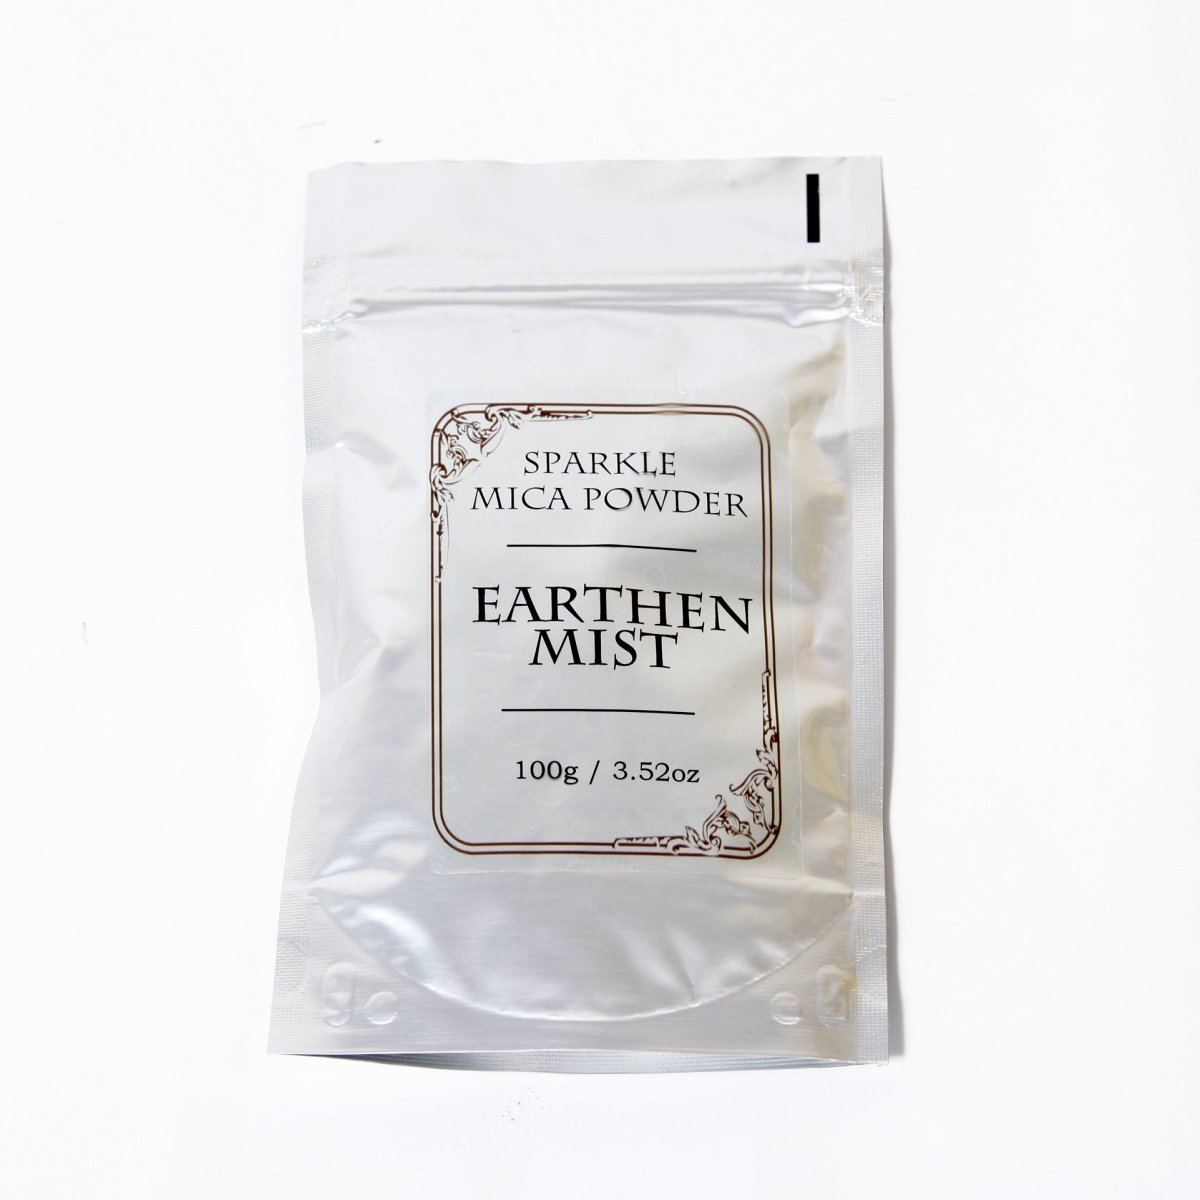 Earthen Mist Sparkle Mica - Mystic Moments UK